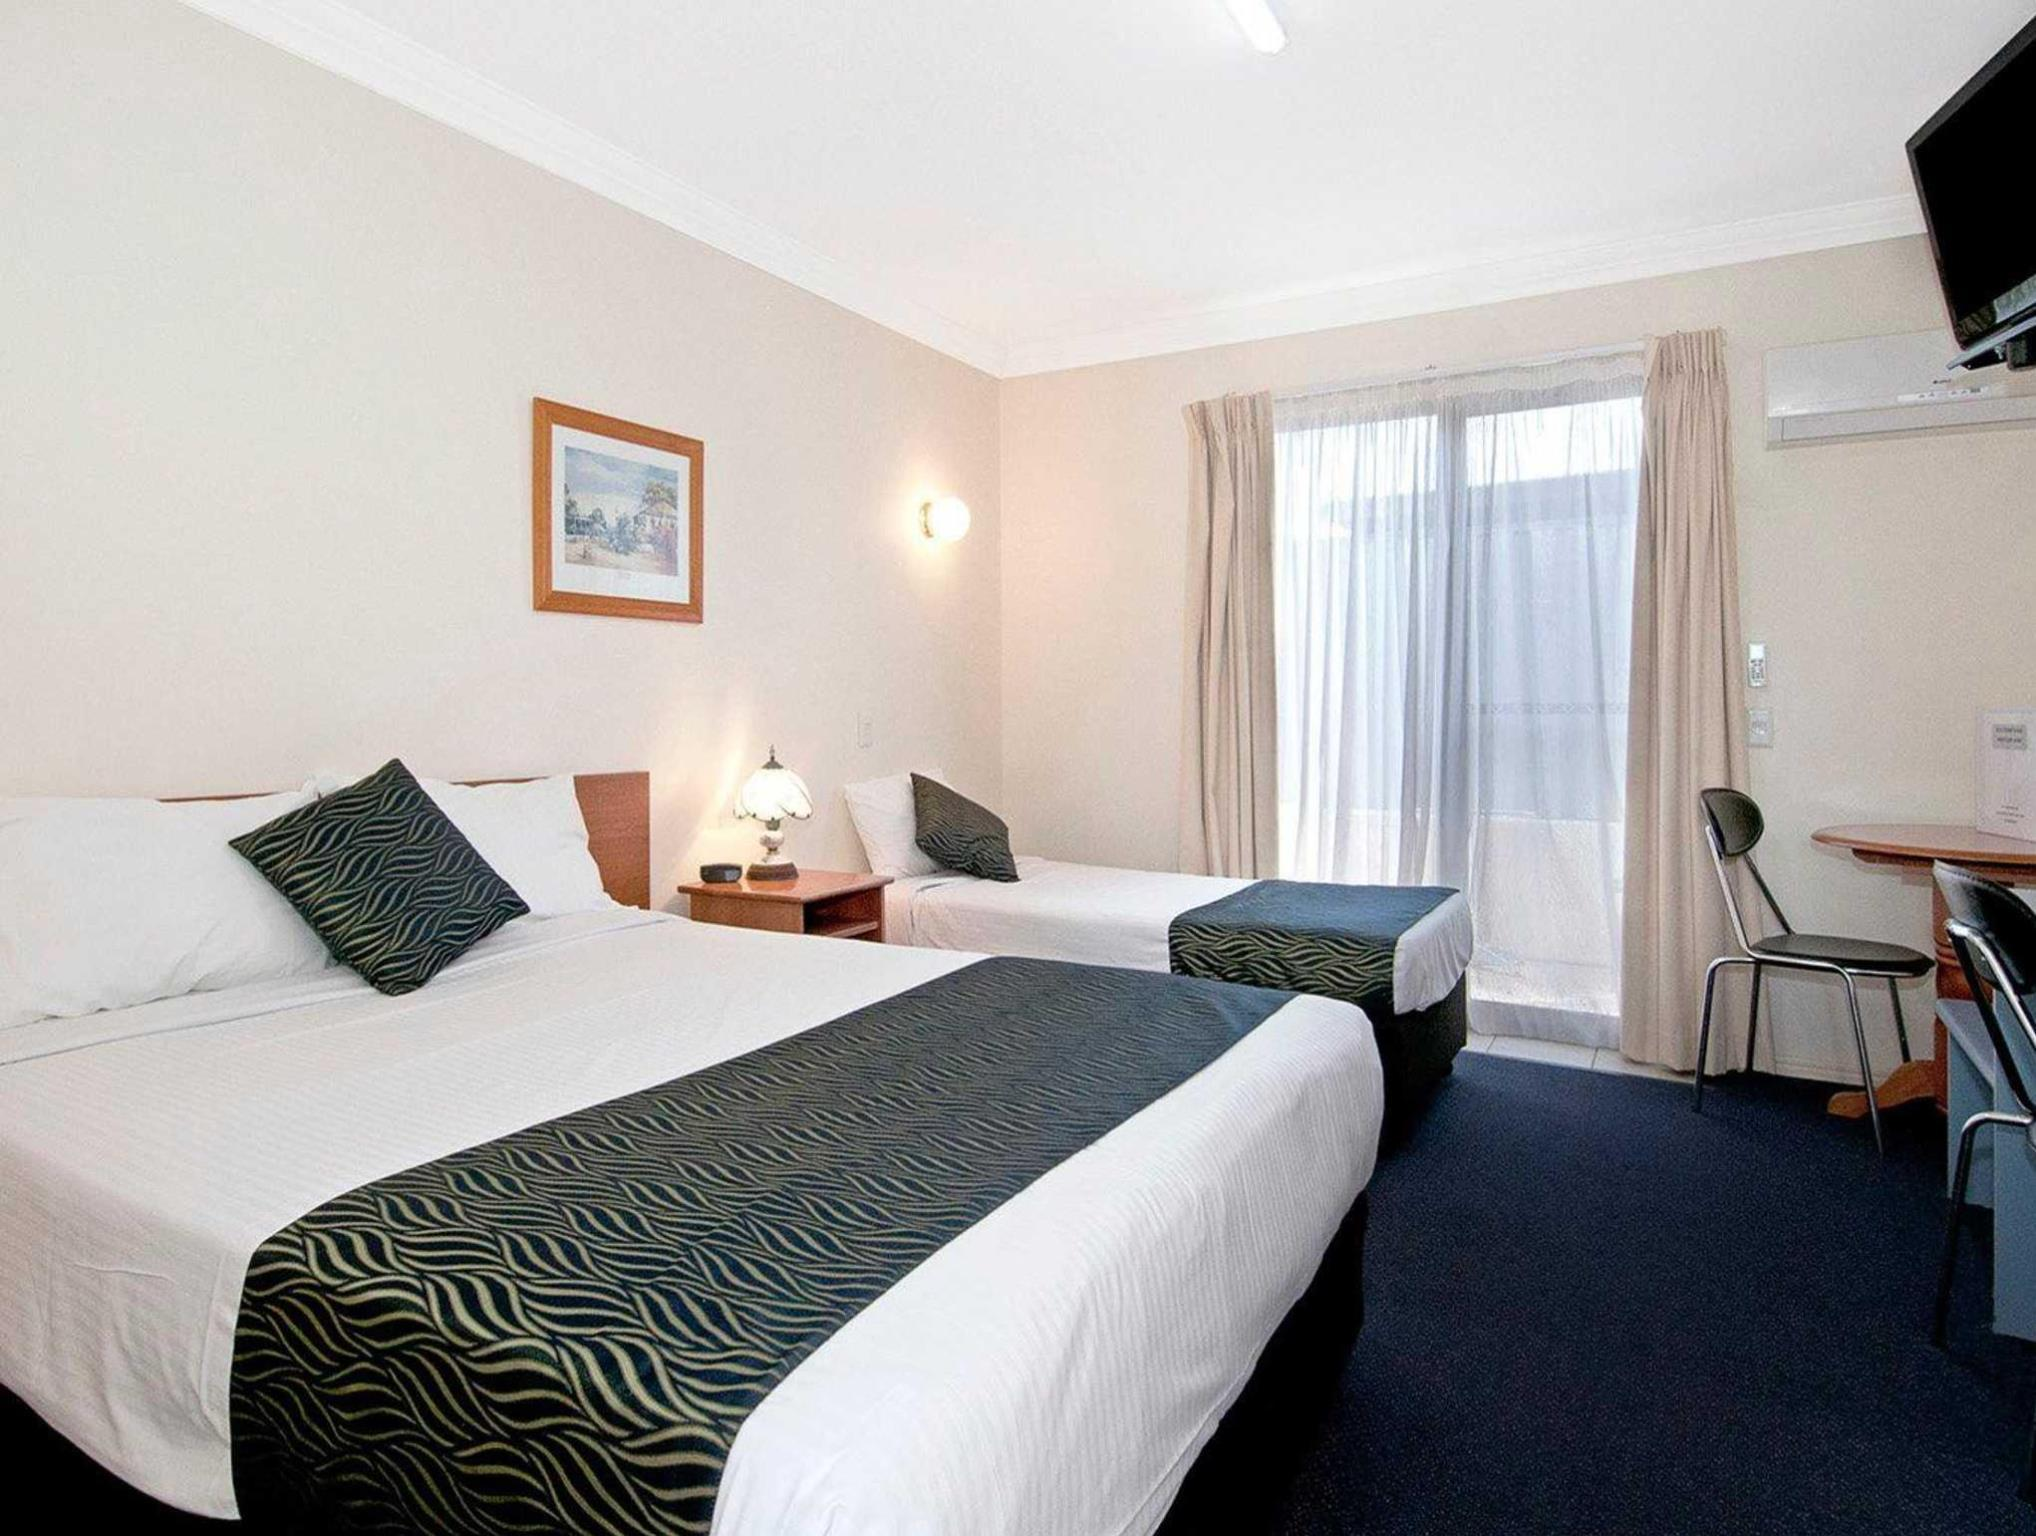 Econo Lodge Waterford, Waterford West